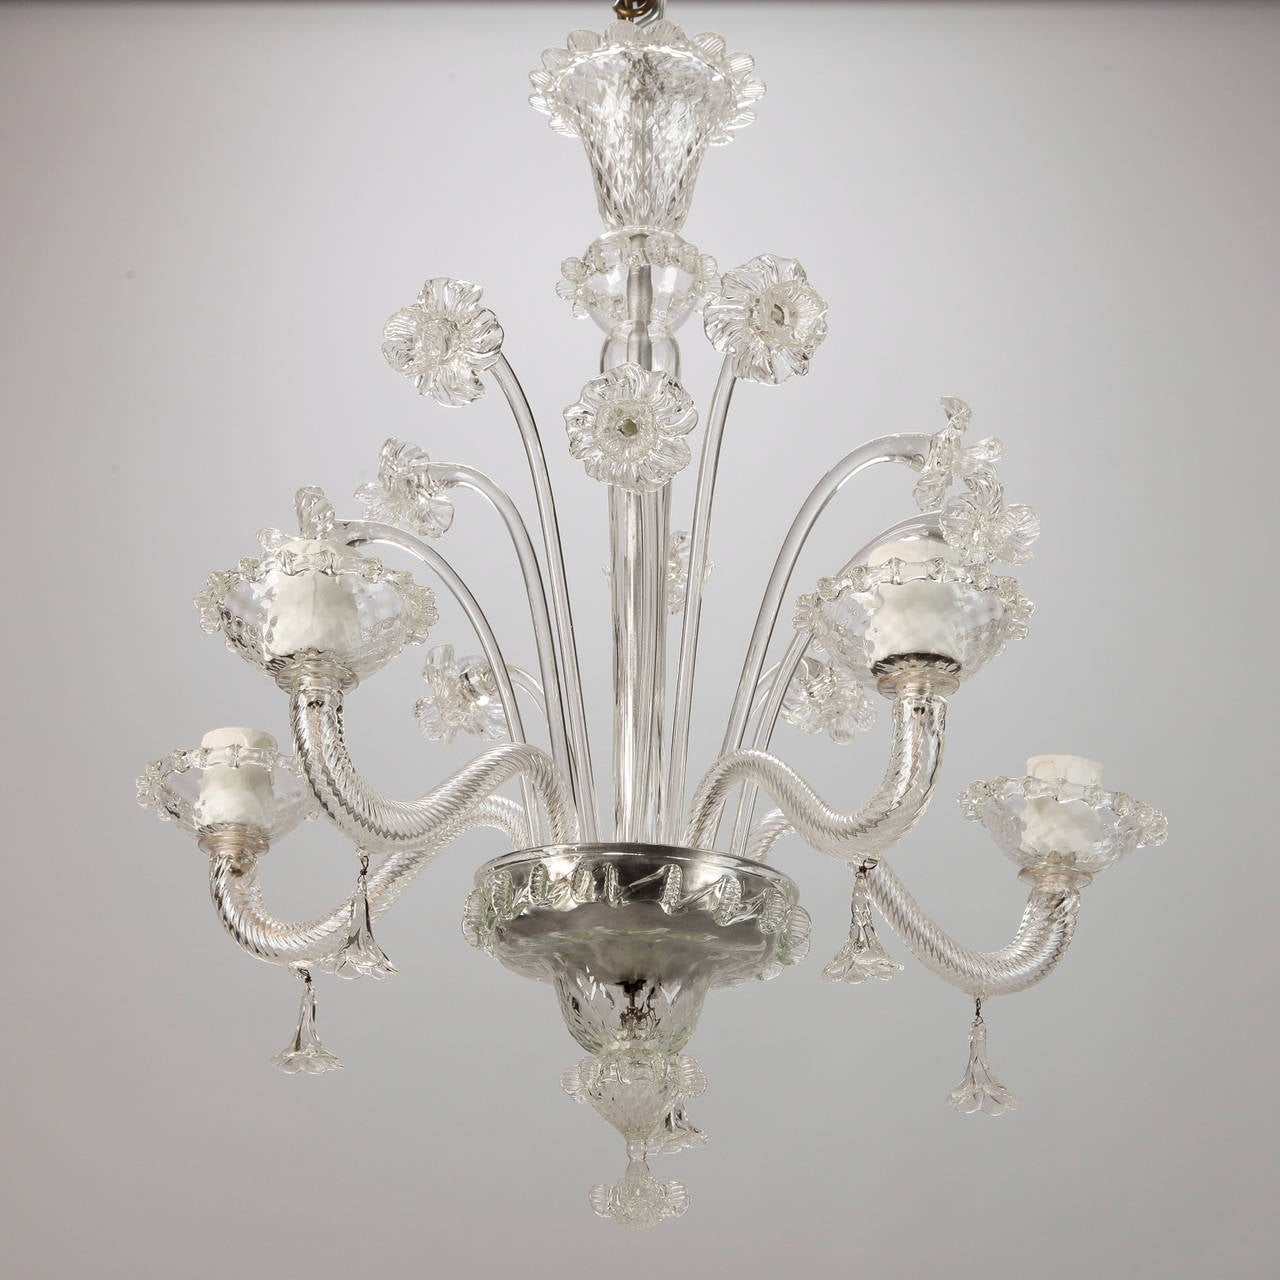 Italian Venetian Five-Light Clear Glass Daffodil Chandelier For Sale